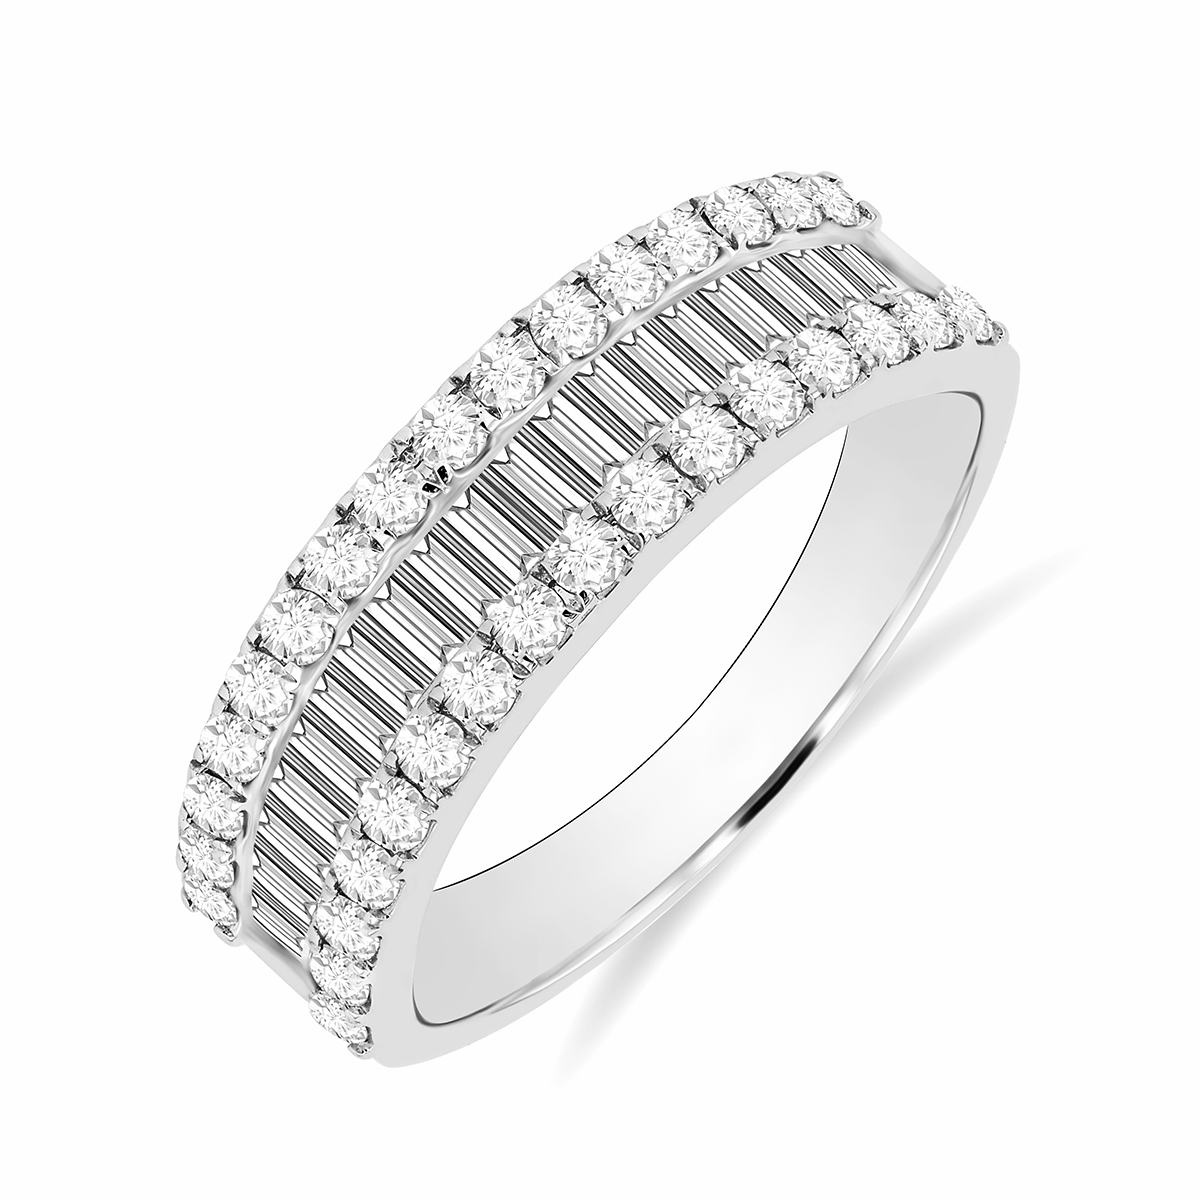 Radiance Collection 1.06ct Diamond & White Gold Half Eternity Ring